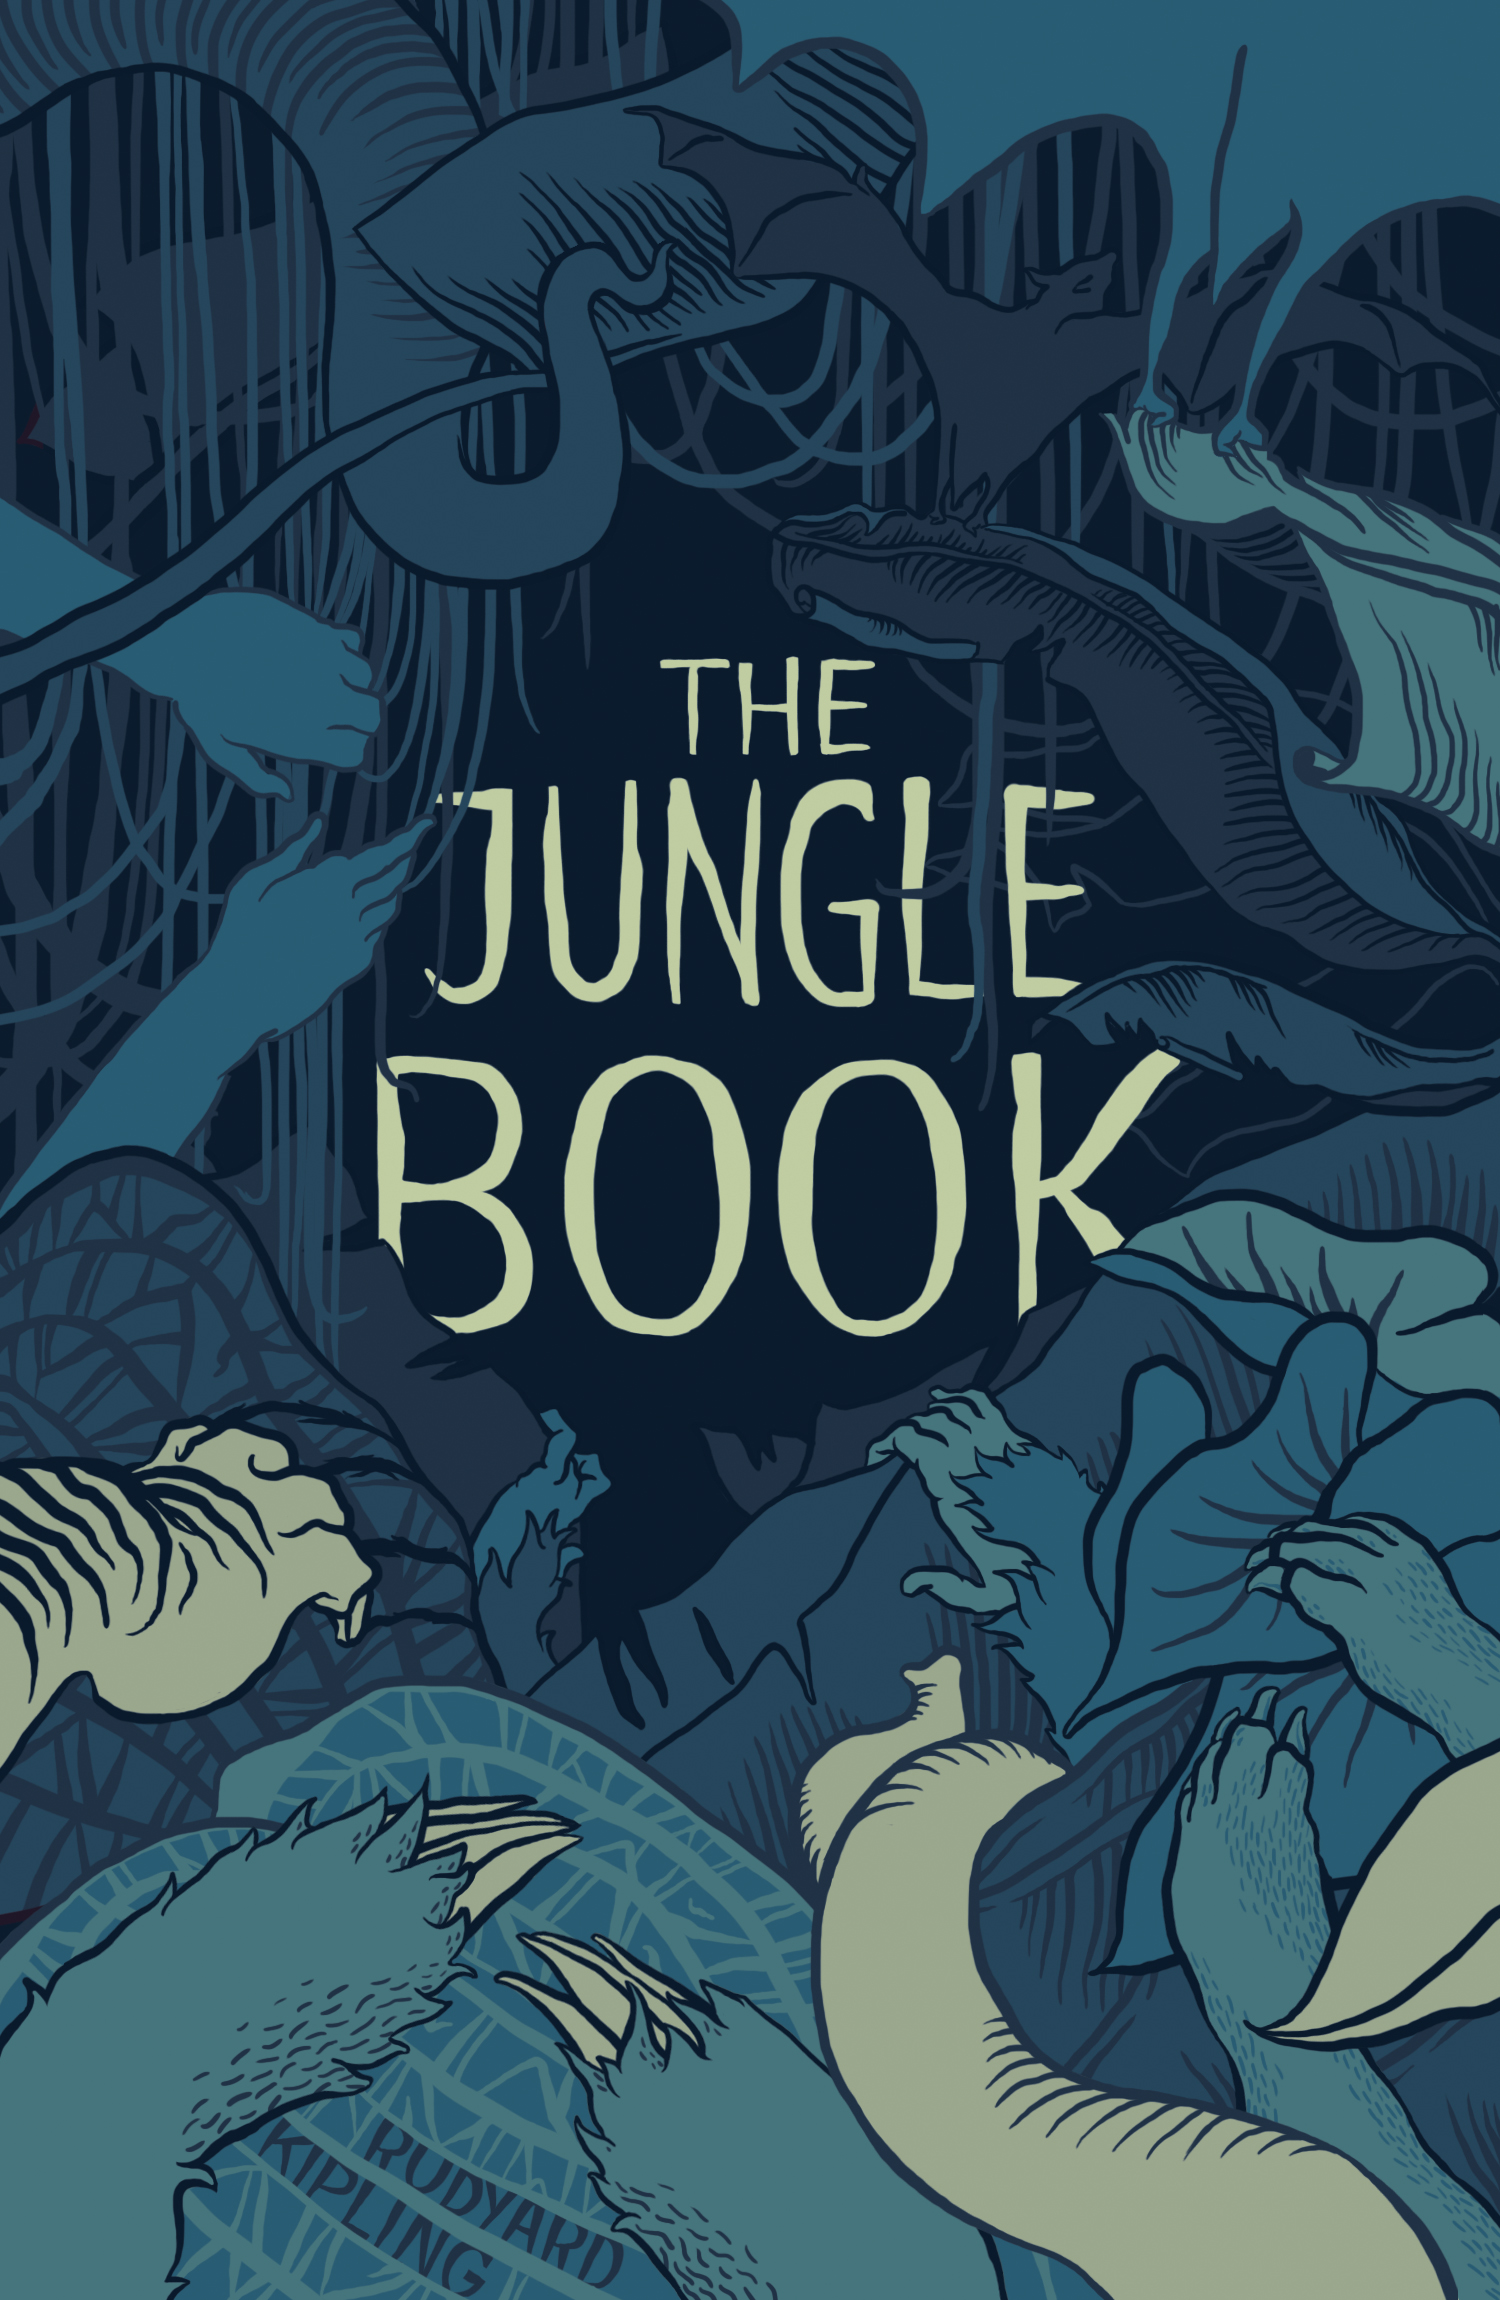 How To Make A Book Cover Using Illustrator : Cover illustration the jungle book by brett